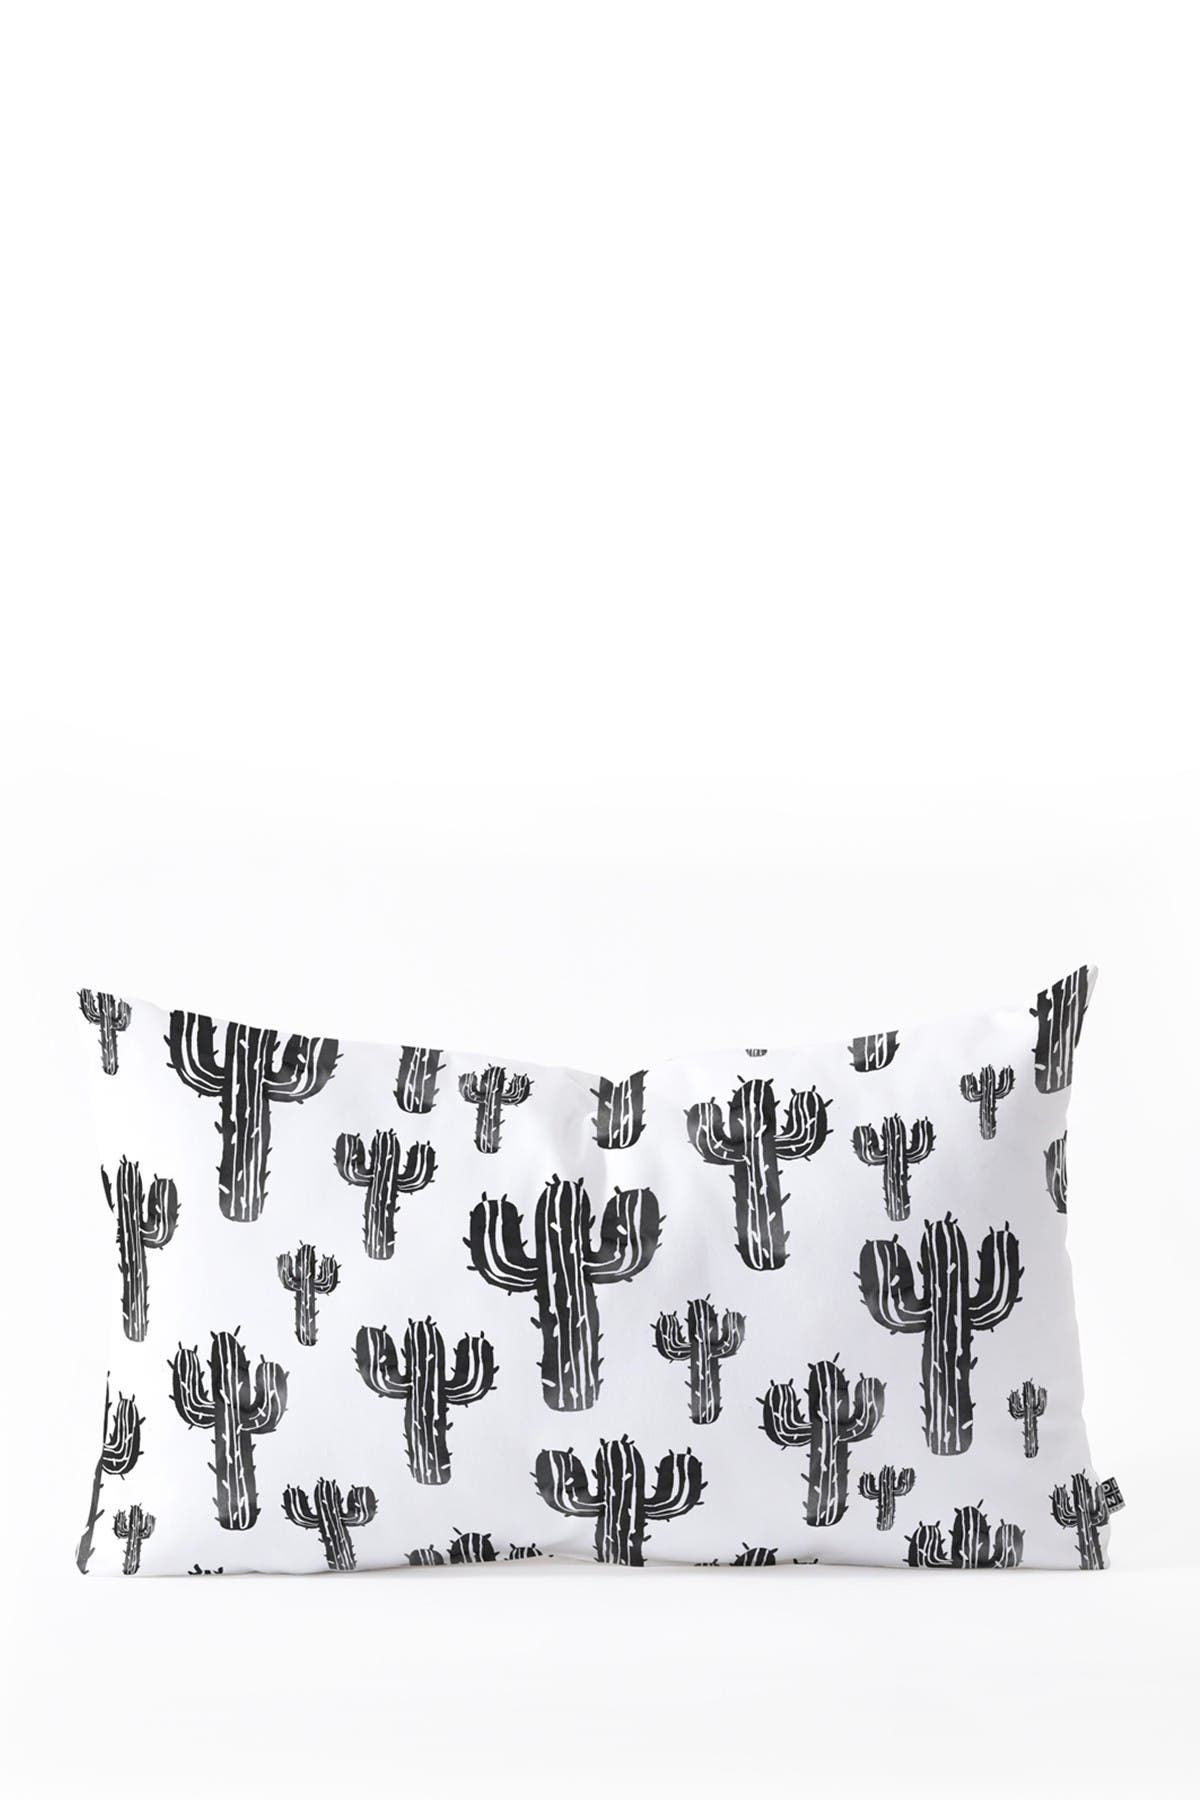 Image of Deny Designs Susanne Kasielke Cactus Party Desert Oblong Throw Pillow